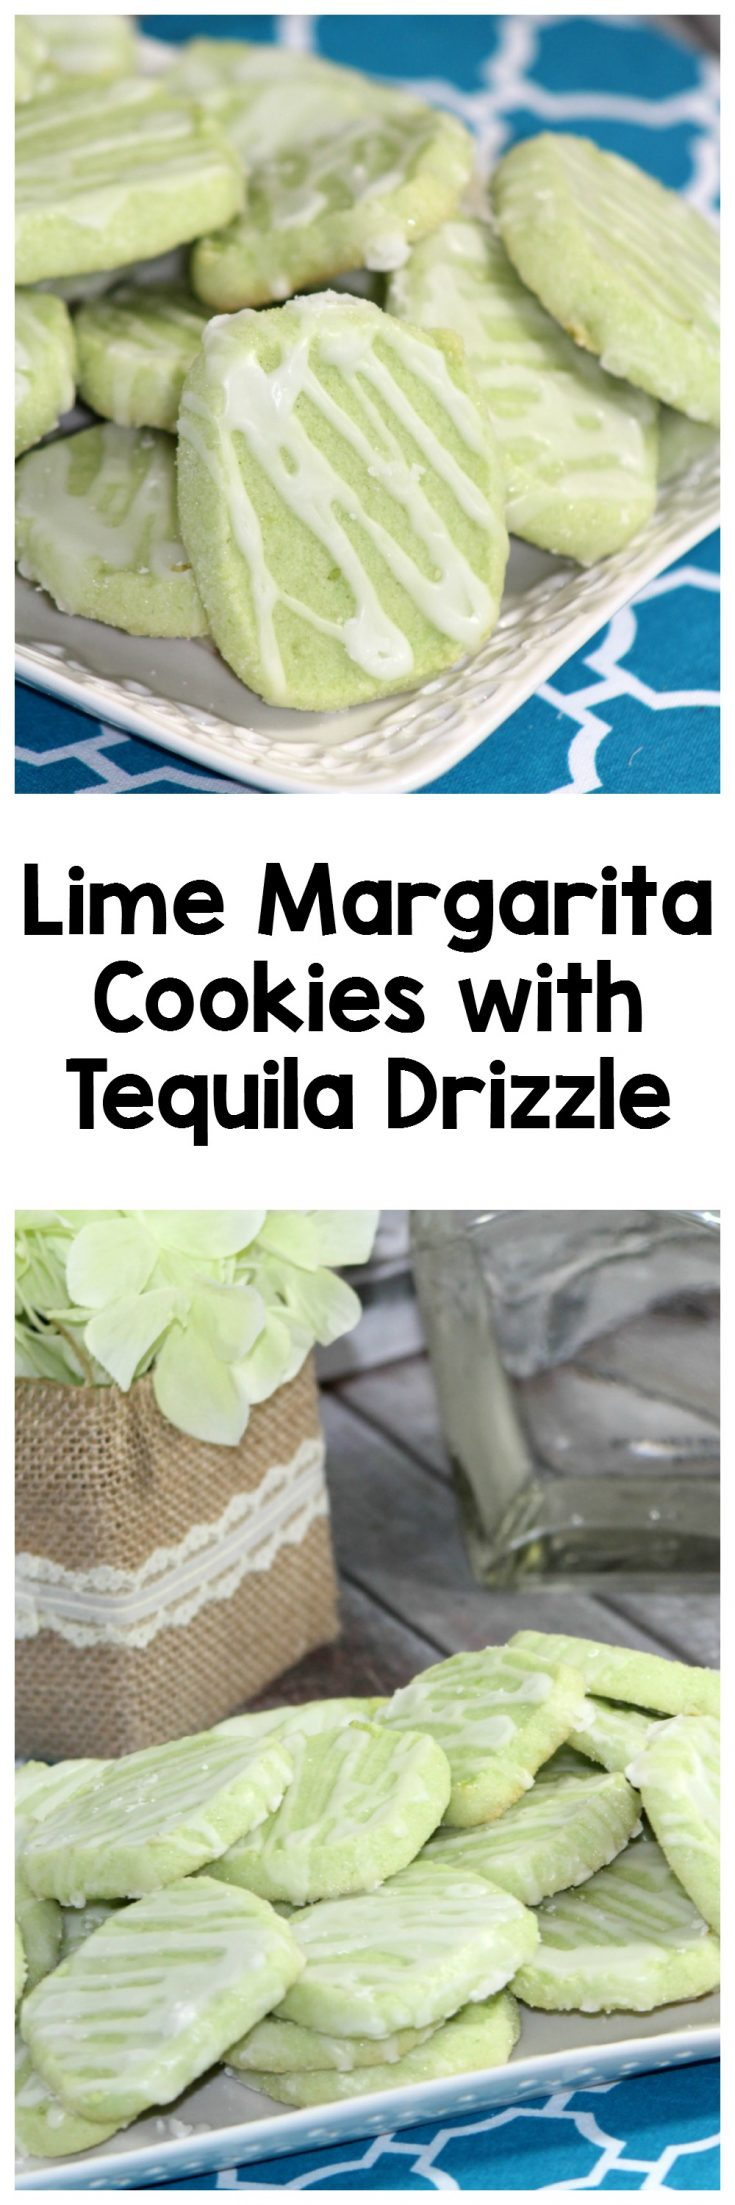 Lime Margaritea Cookies with a Tequila Drizzle. This boozy cookie has a grat alcoholic glaze and is like a margarita in your hand. Perfect for adult functions. | Alcohol |